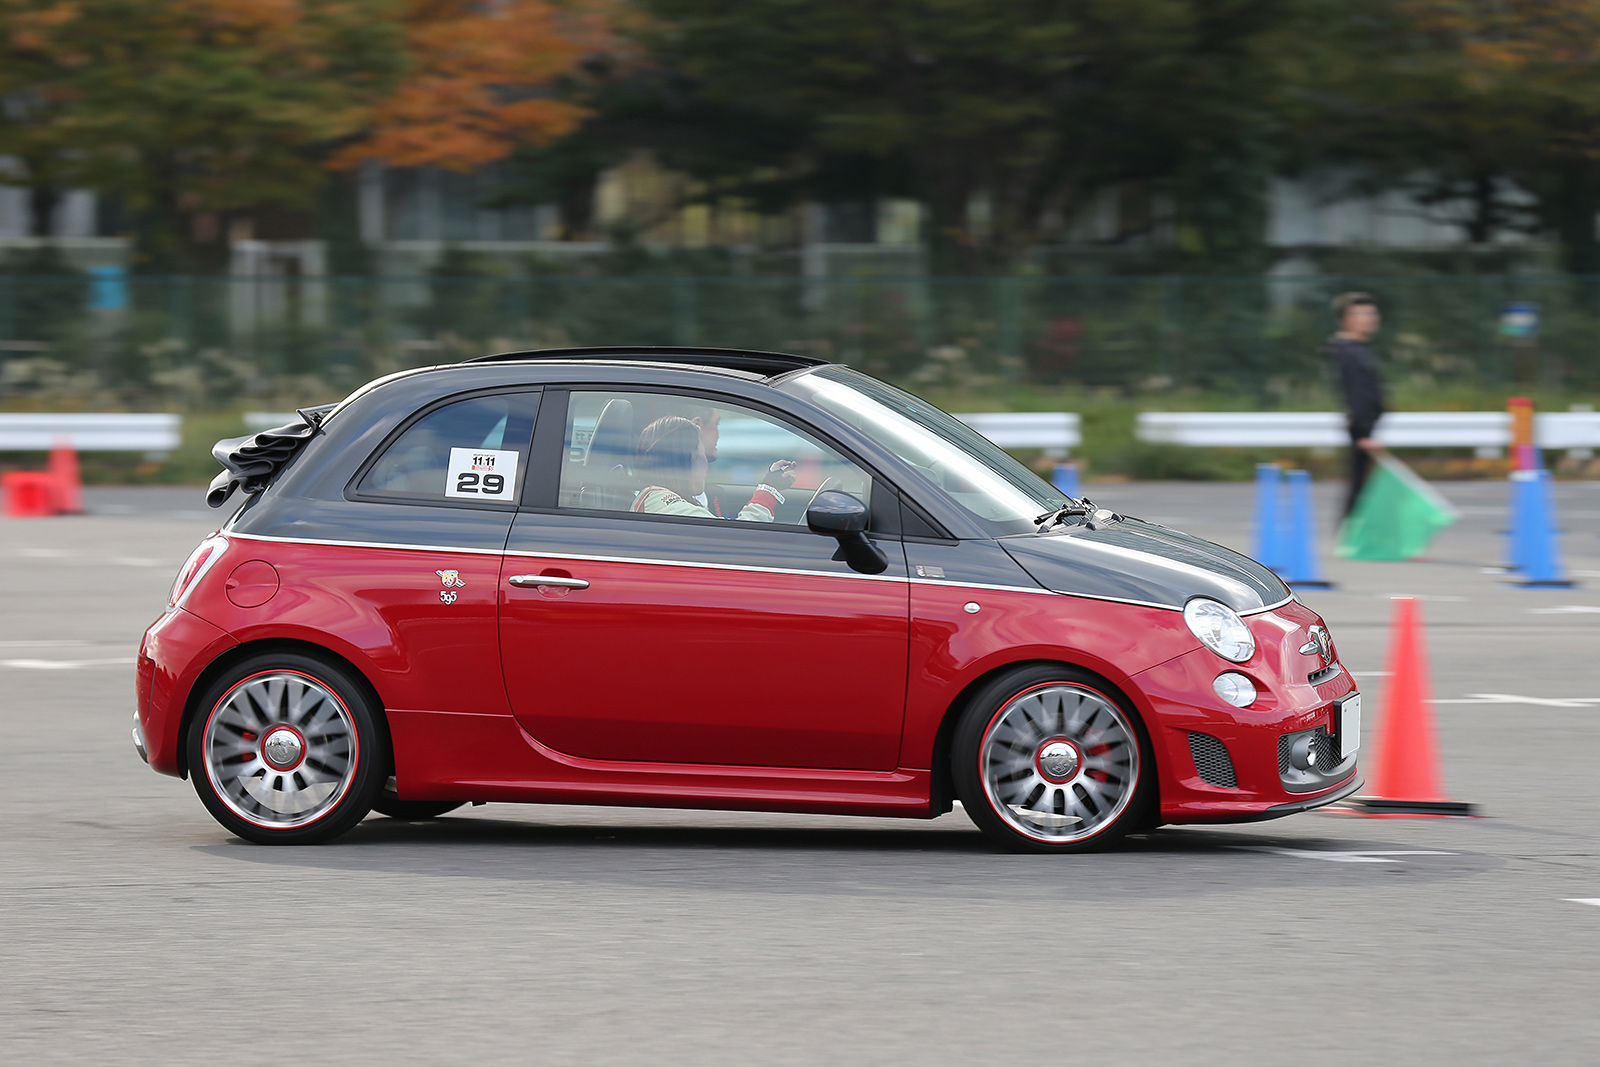 Abarth_day_06